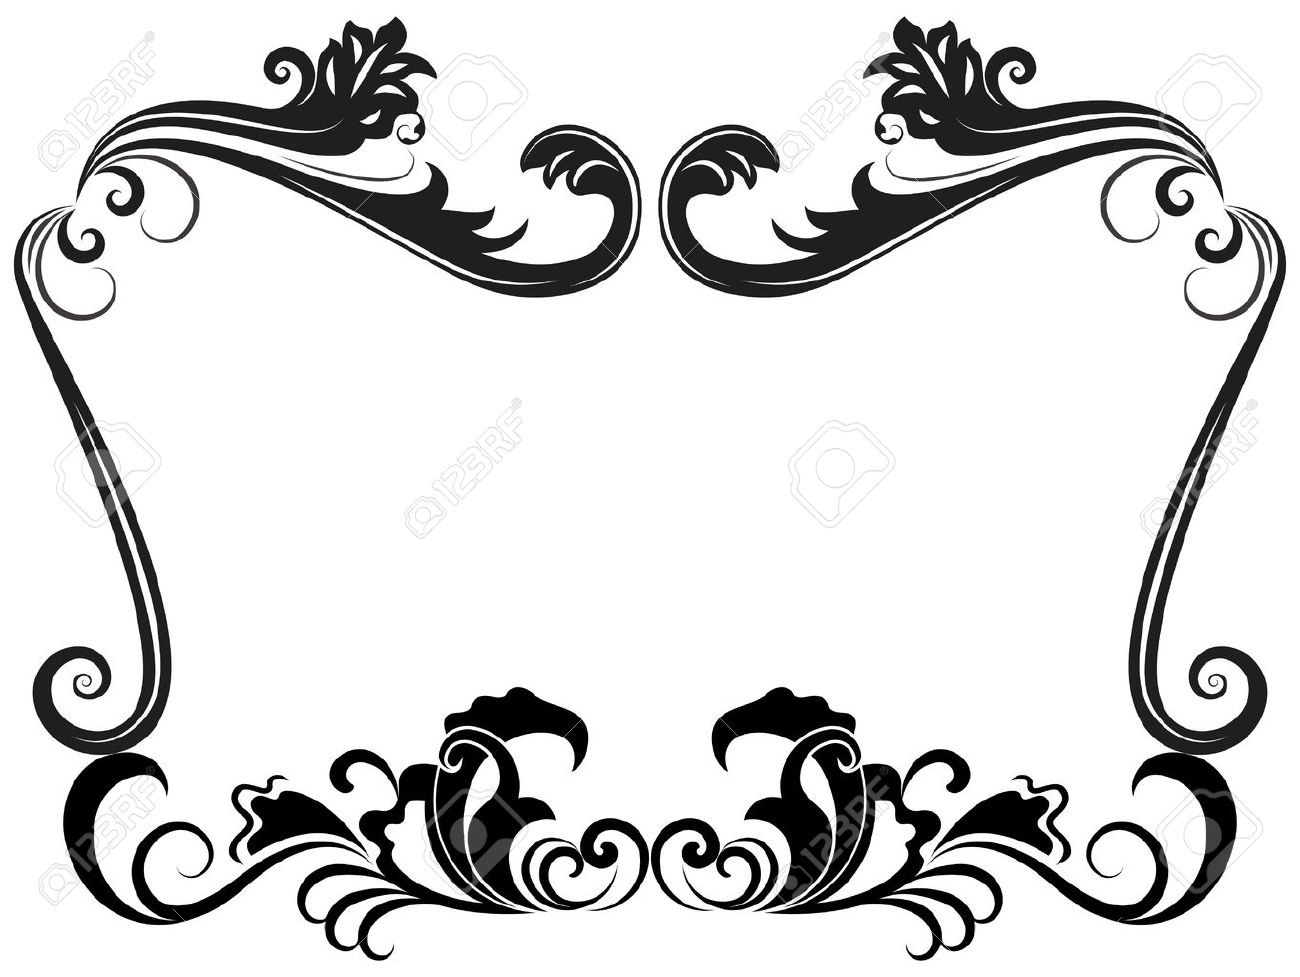 black and white vintage floral frame template royalty free cliparts